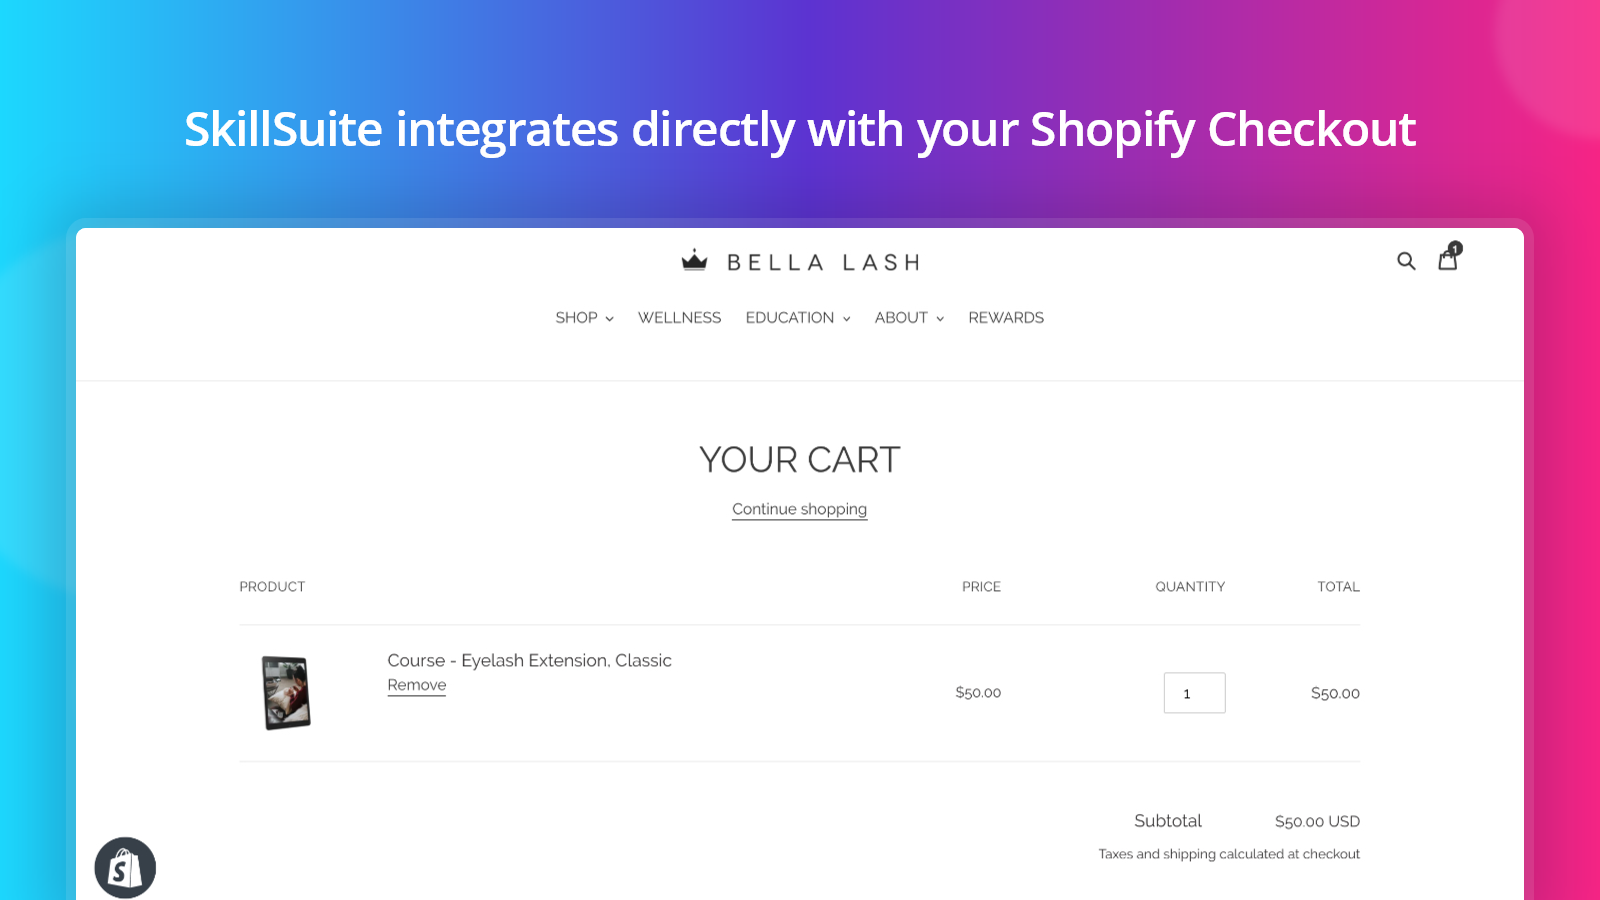 SkillSuite integrates directly with your Shopify checkout